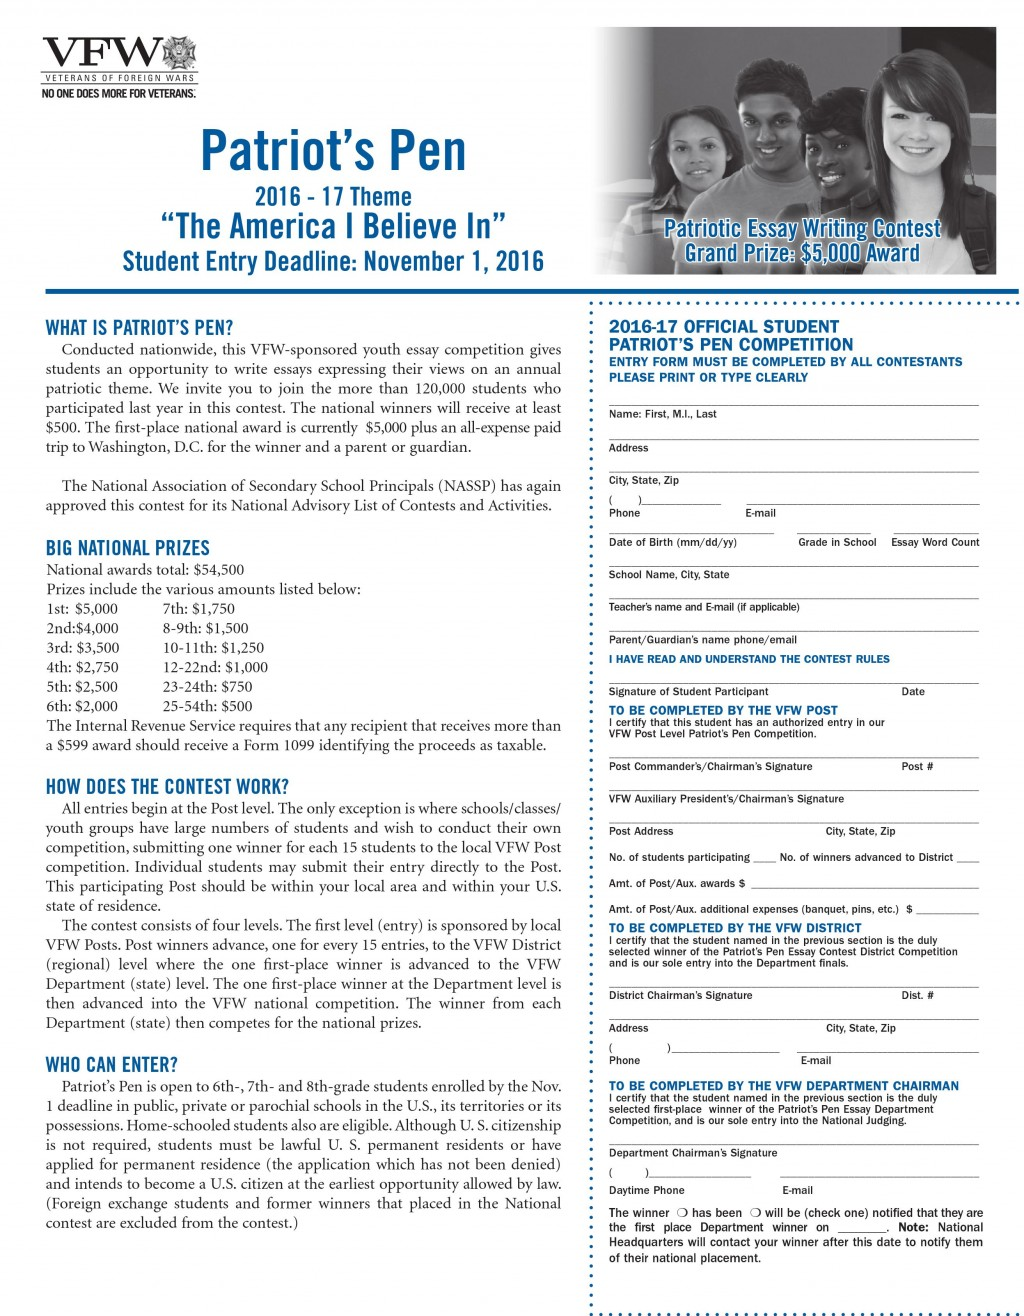 005 Patriots Pen Essay Contest Example Remarkable Patriot's 2018 Winners Vfw Entry Form Large